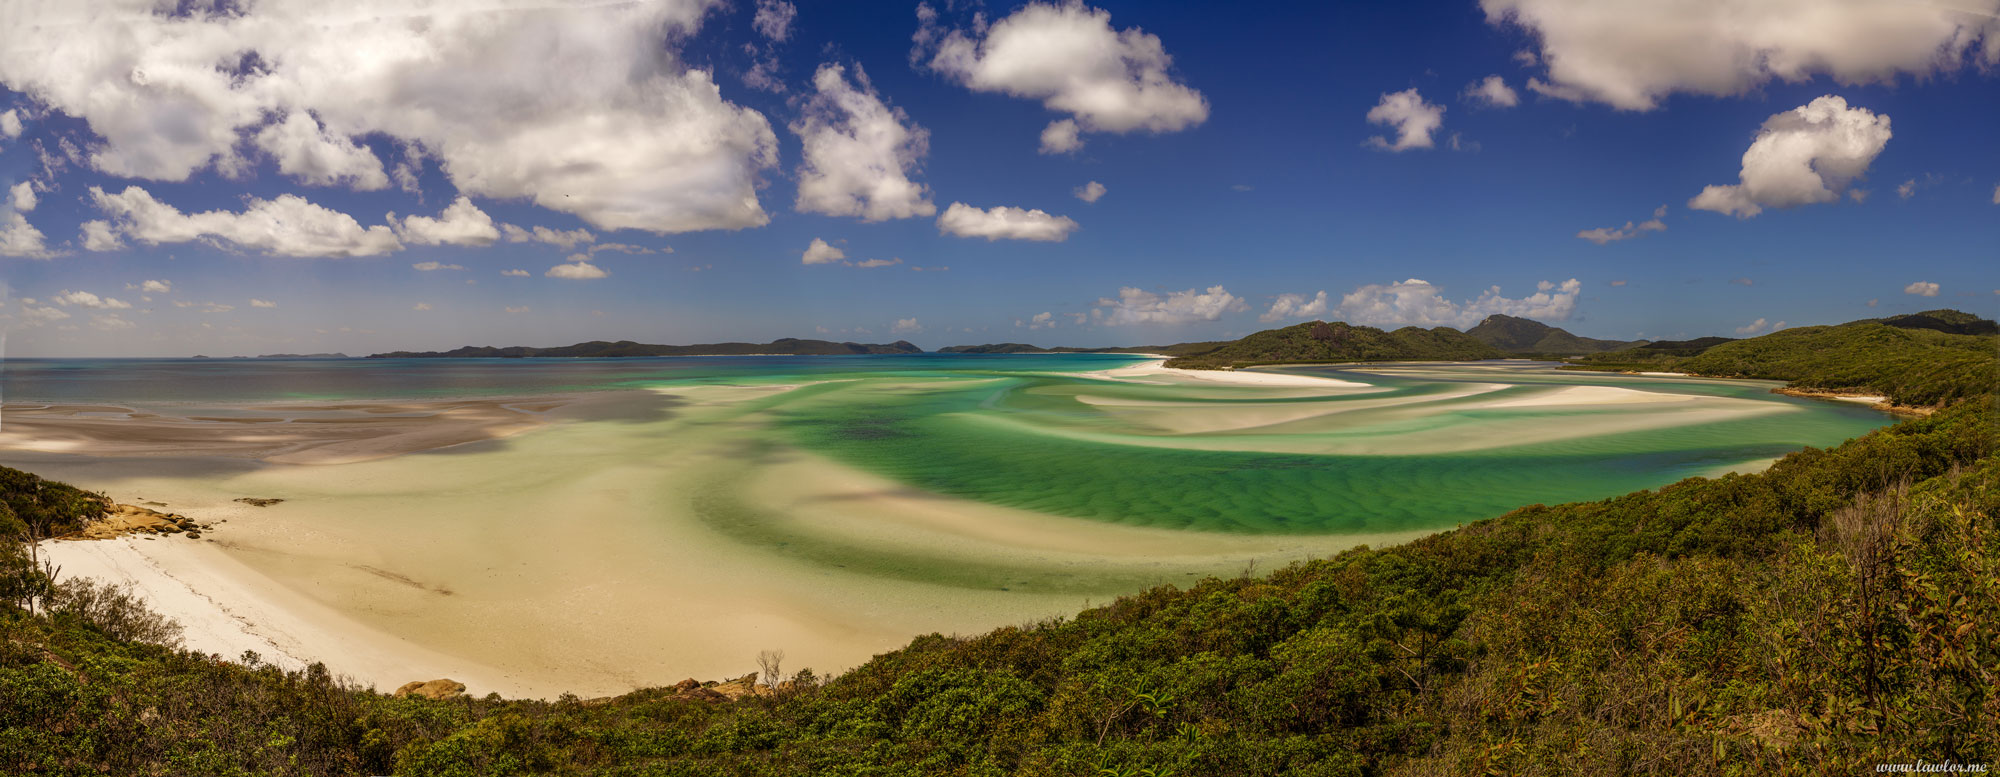 Free Landscape Photography, free landscape photos, free nature images, free HD images, free high definition stock images, free stock images download, desktop background, desktop wallpapers, free screensaver, landscape photography, lawlors landscapes, steve Lawlor photography, hill inlet, whitahaven beach, whitsundays